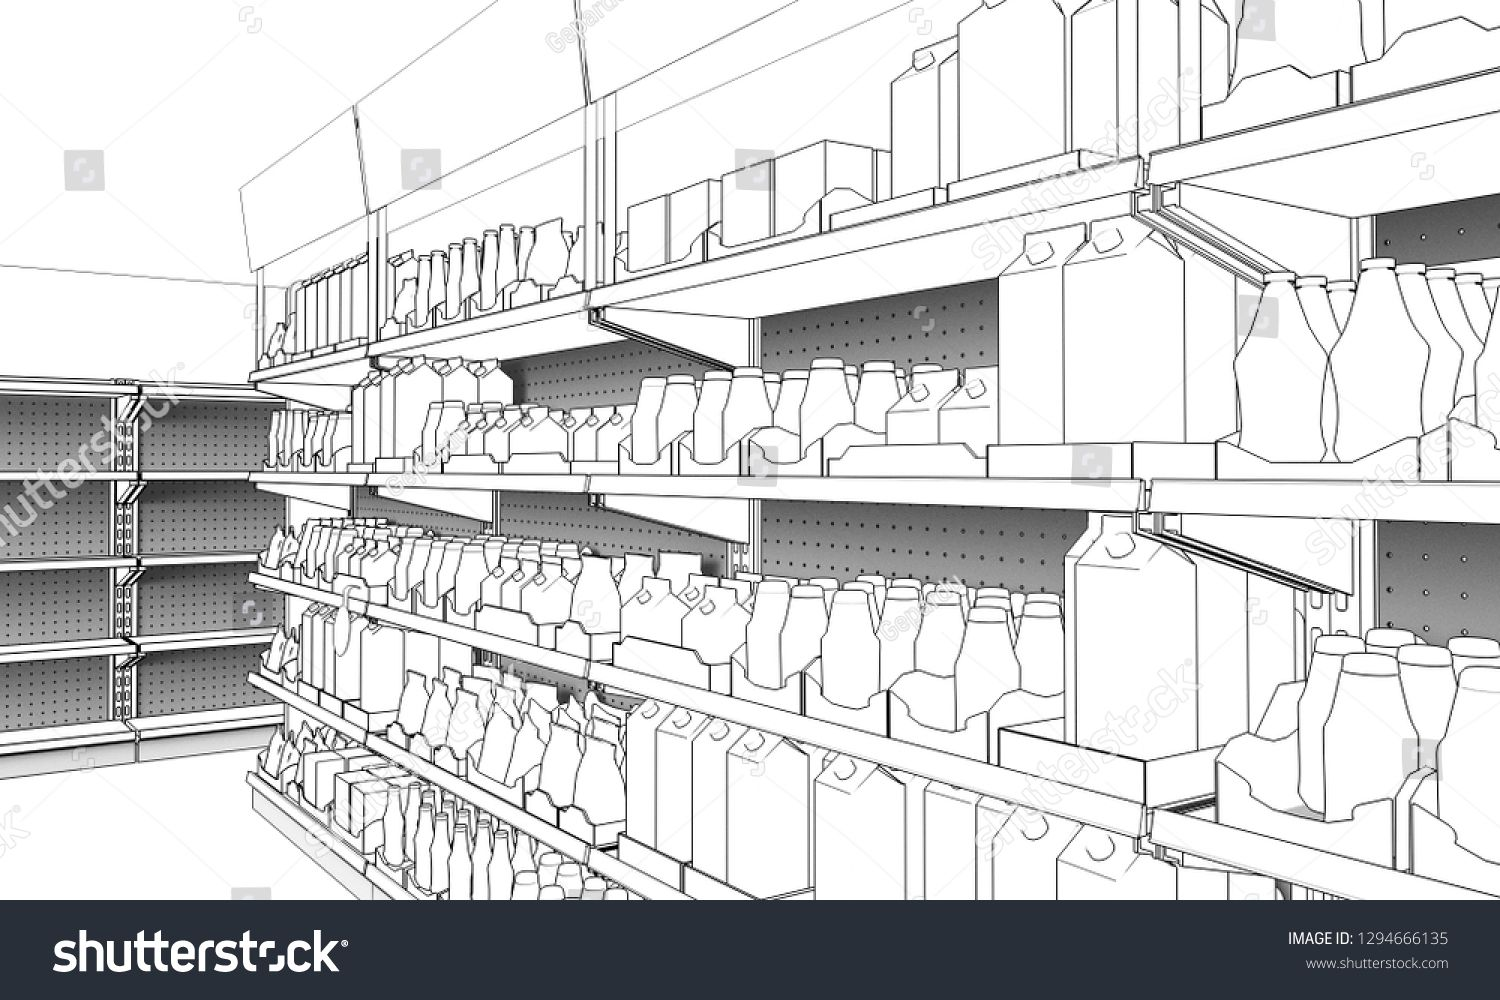 Cartoon Supermarket Graphic Black White Interior Sketch